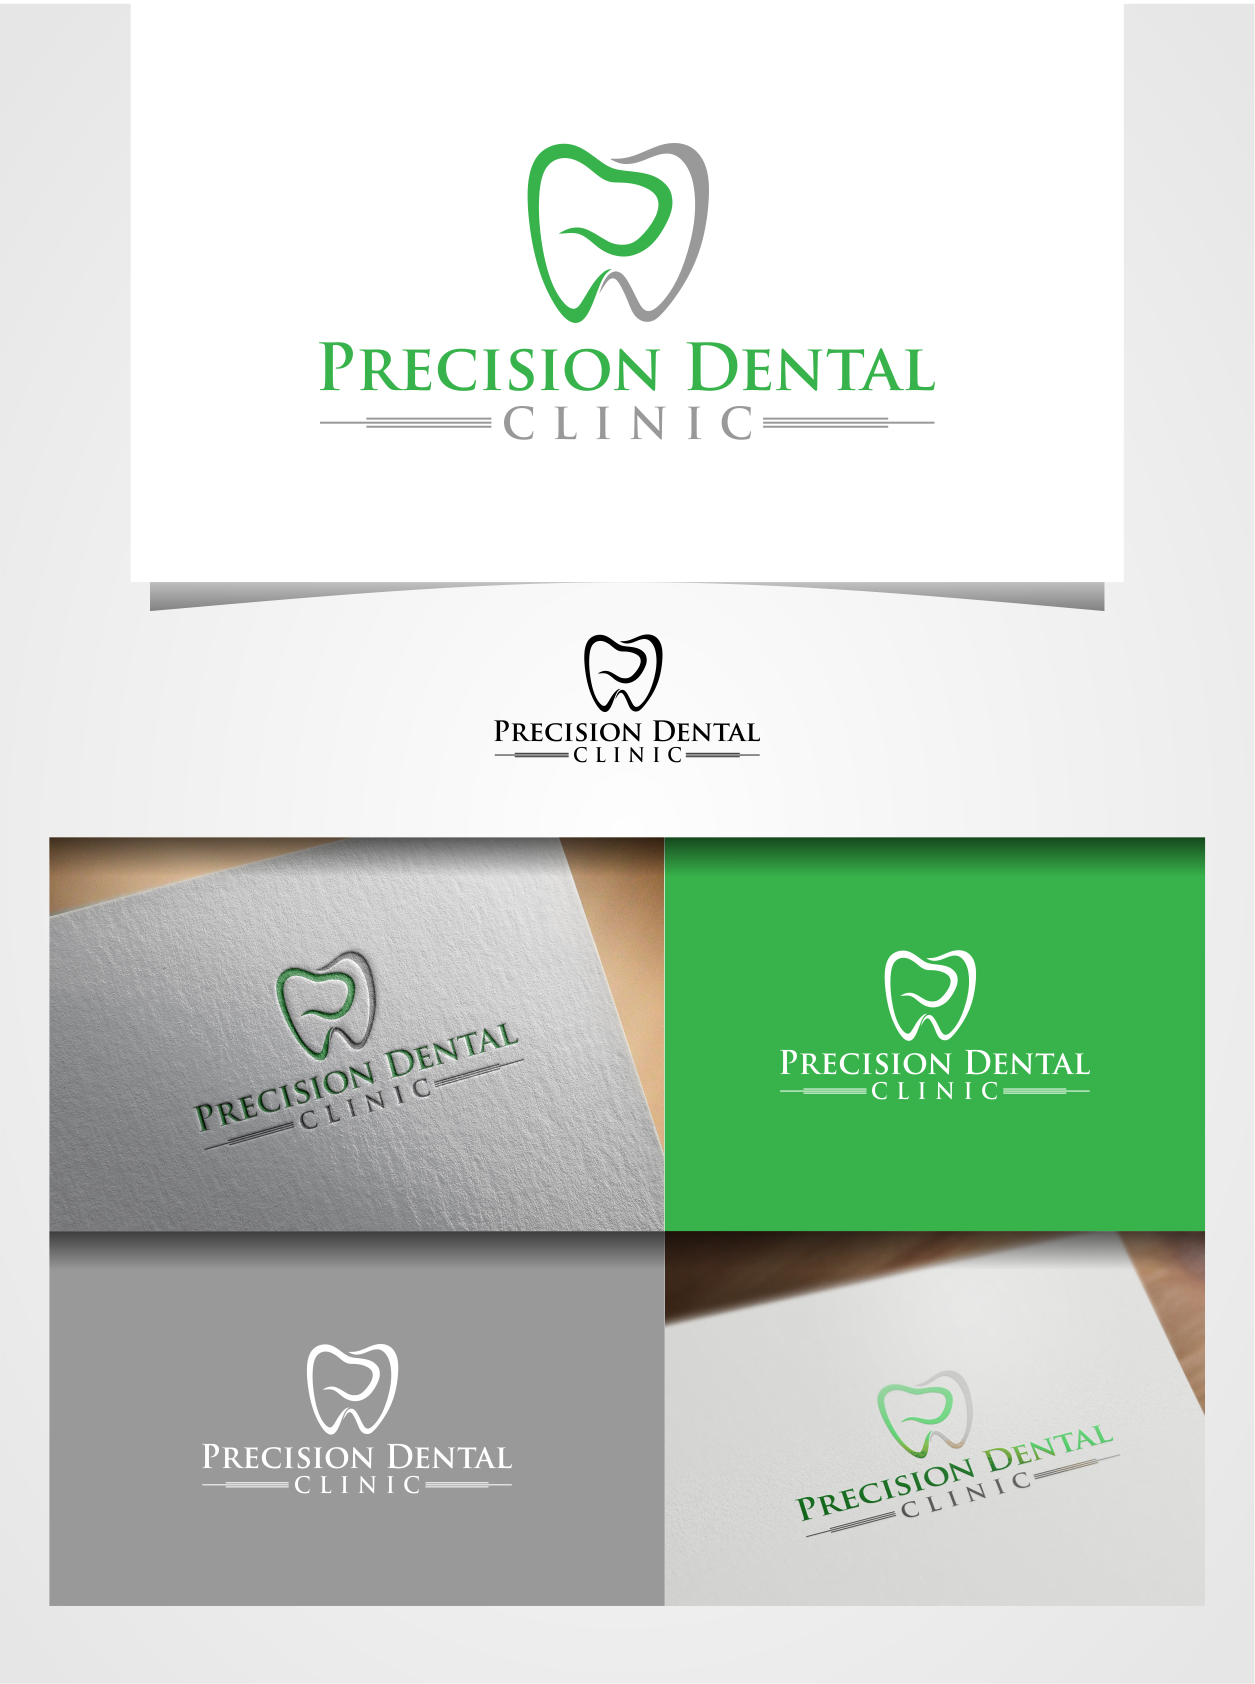 Logo Design by Raymond Garcia - Entry No. 7 in the Logo Design Contest Captivating Logo Design for Precision Dental Clinic.